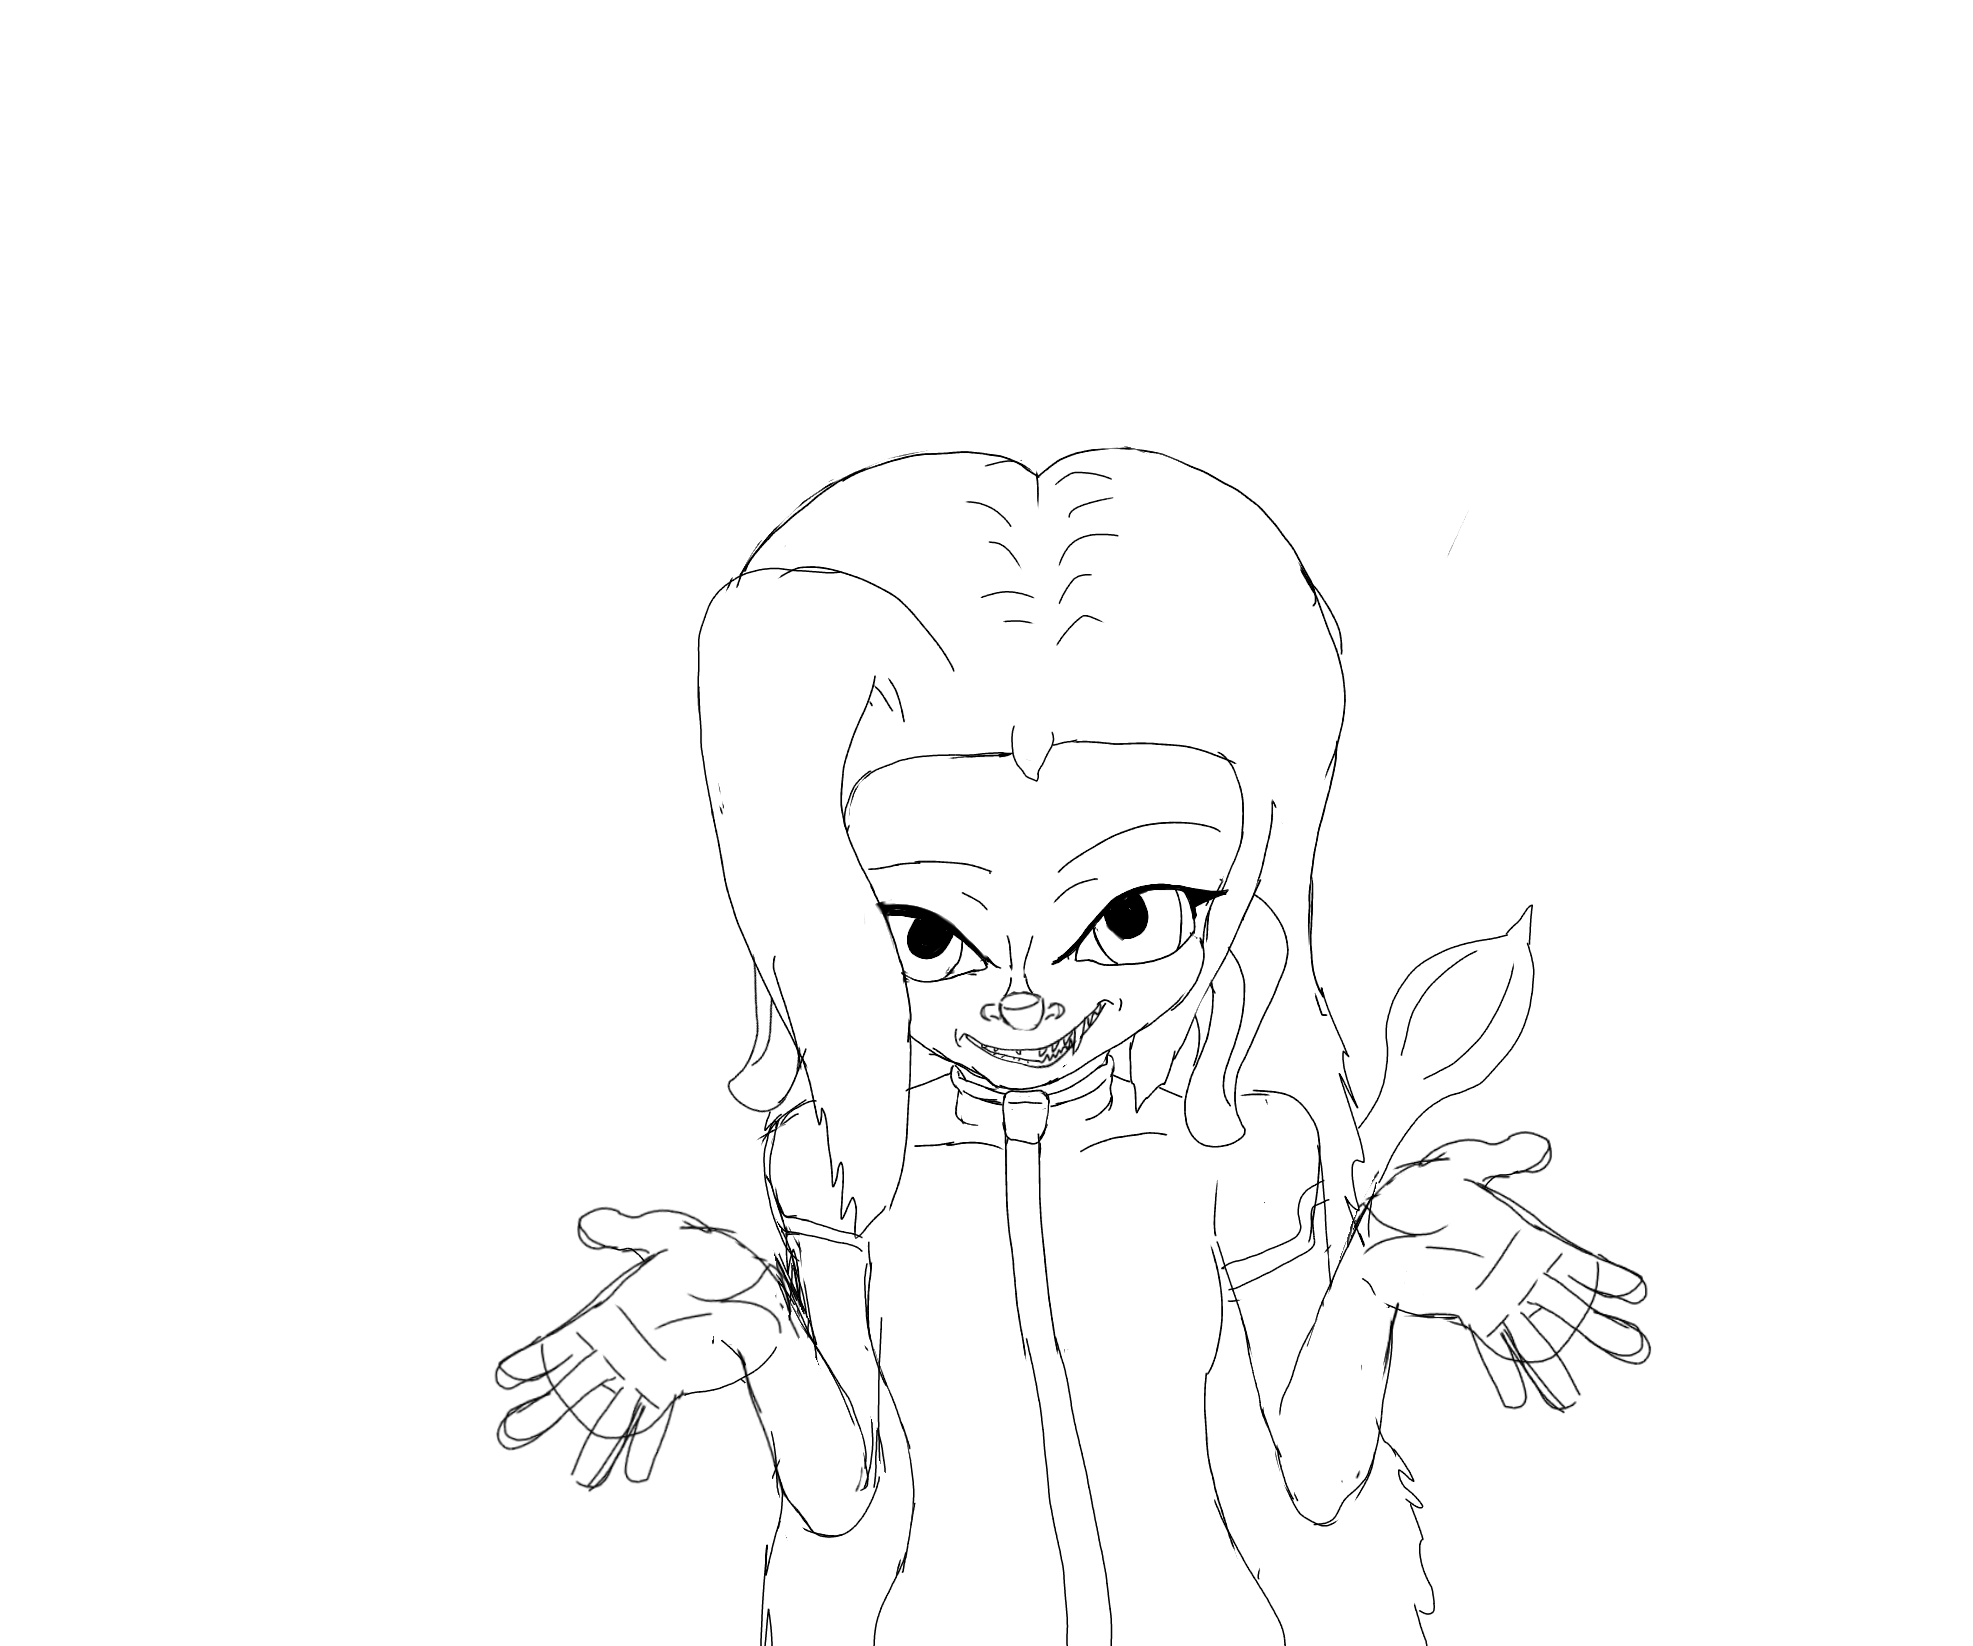 bella_sketch_by_charly5750-dccabwh.png